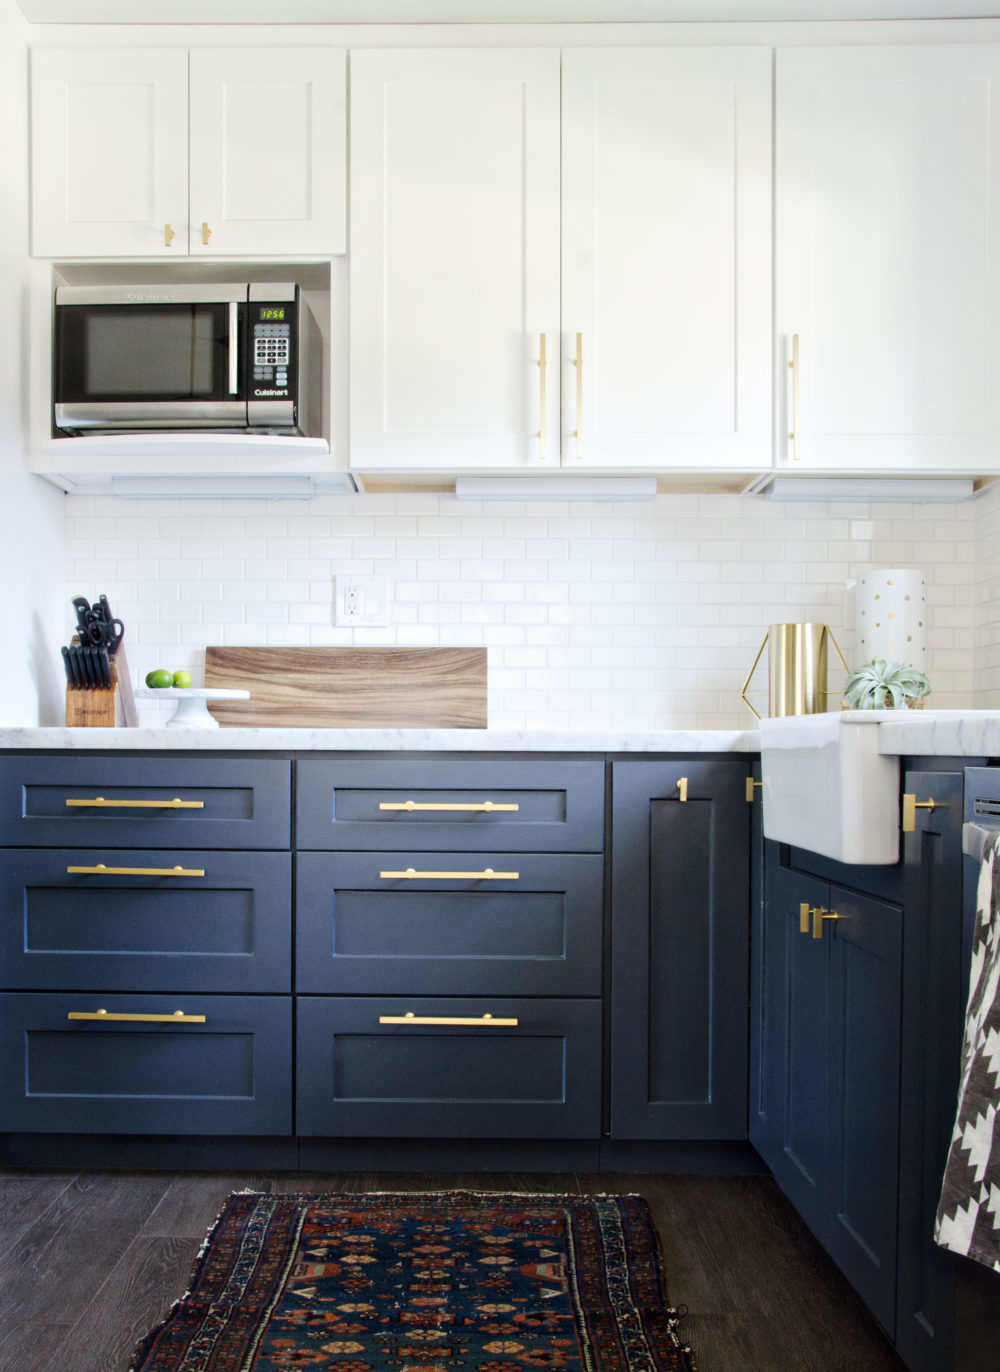 6 Ways to Use the Trendy Navy Blue and Gold Color Scheme 02 navy blue The Trendy Navy Blue and Gold Color Scheme – 6 ways to use it 6 Ways to Use the Trendy Navy Blue and Gold Color Scheme 02